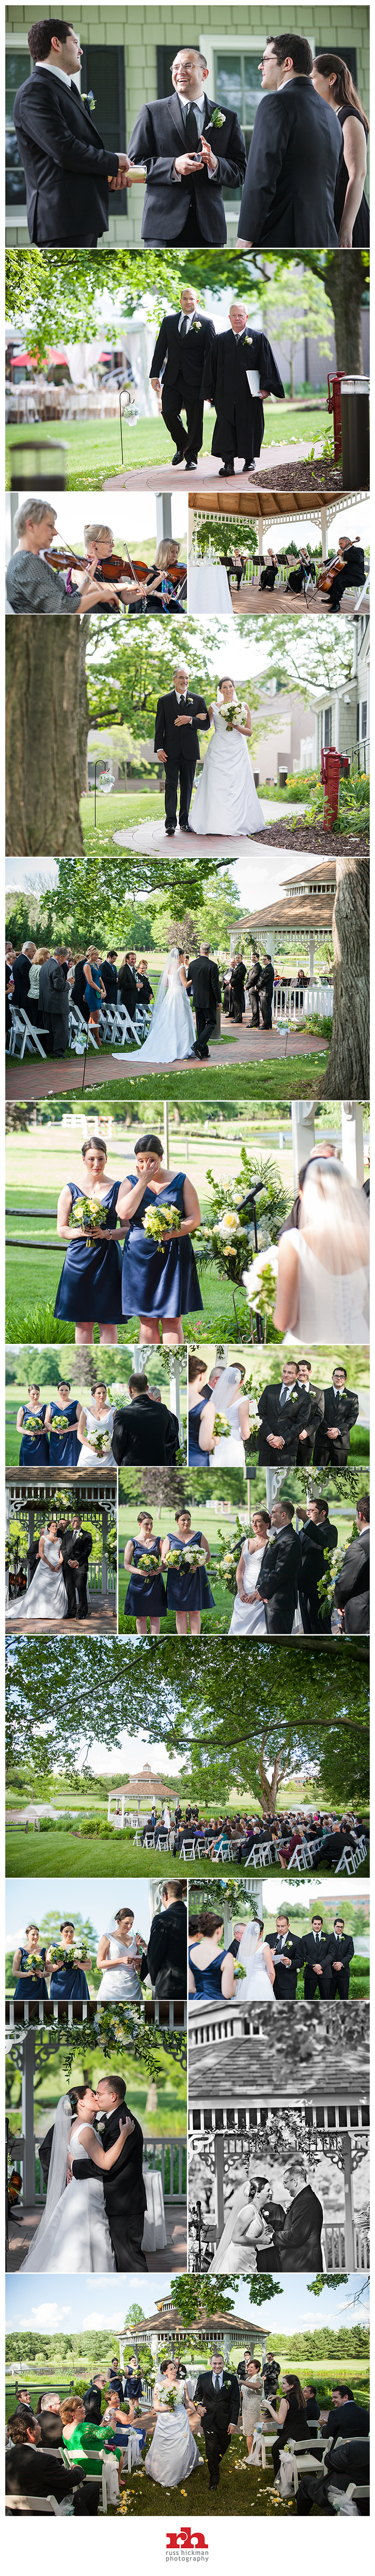 Philadelphia Wedding Photographer MZWB0003